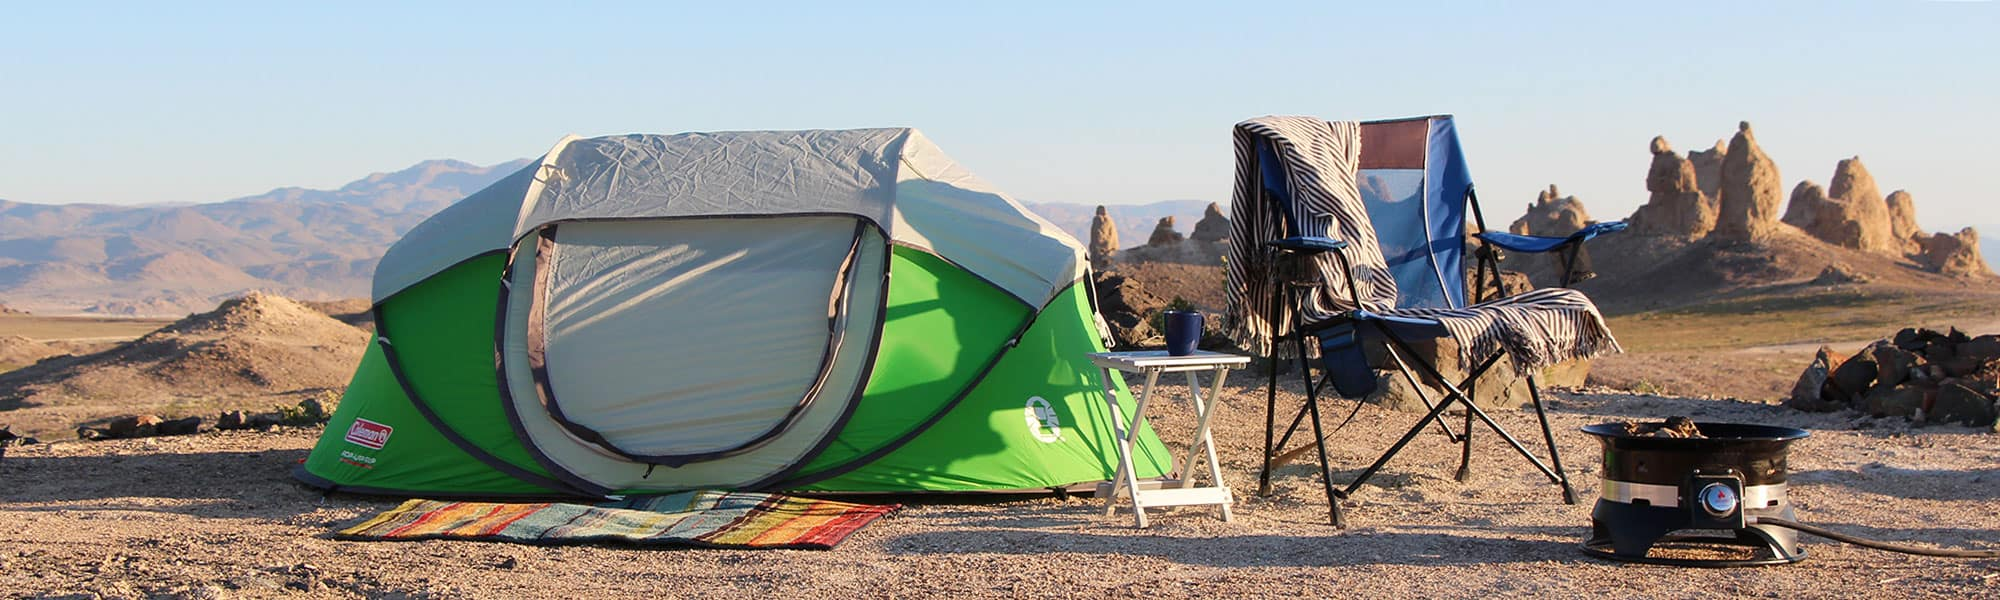 this-pop-up-tent-sets-itself-up-for-camping